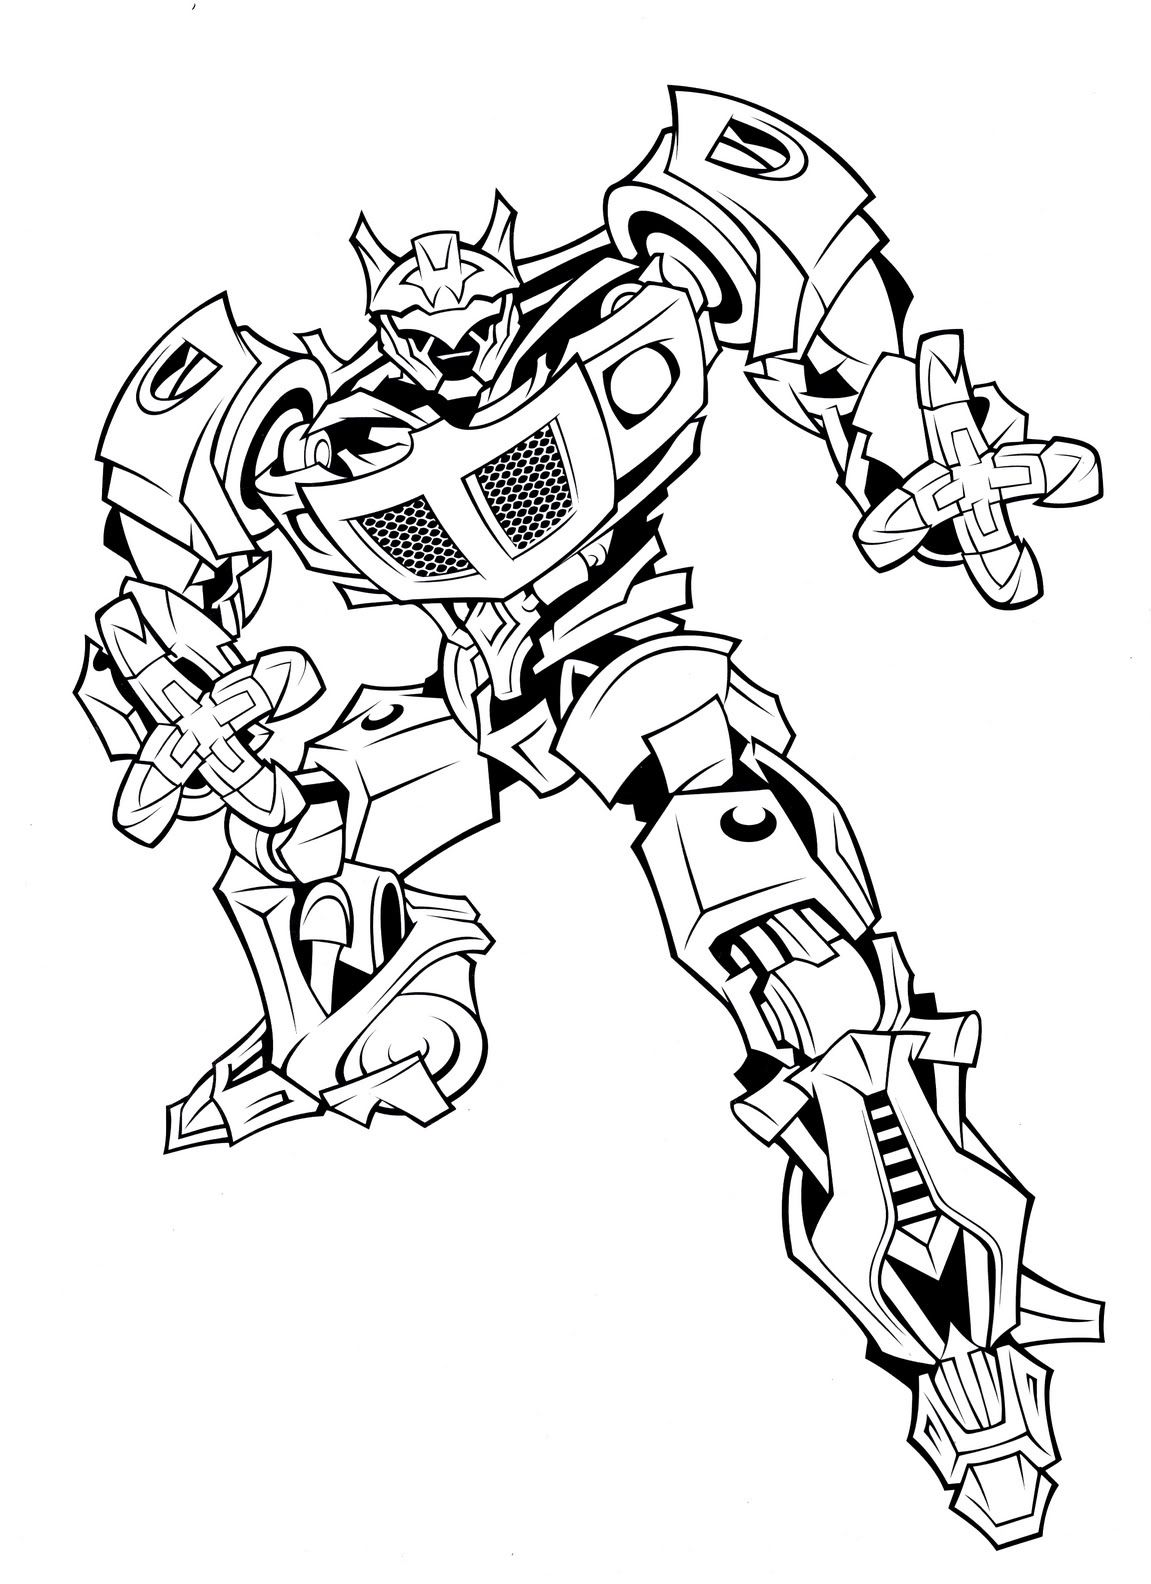 Coloring Pages For Boys Transformers At Getdrawings Com Free For